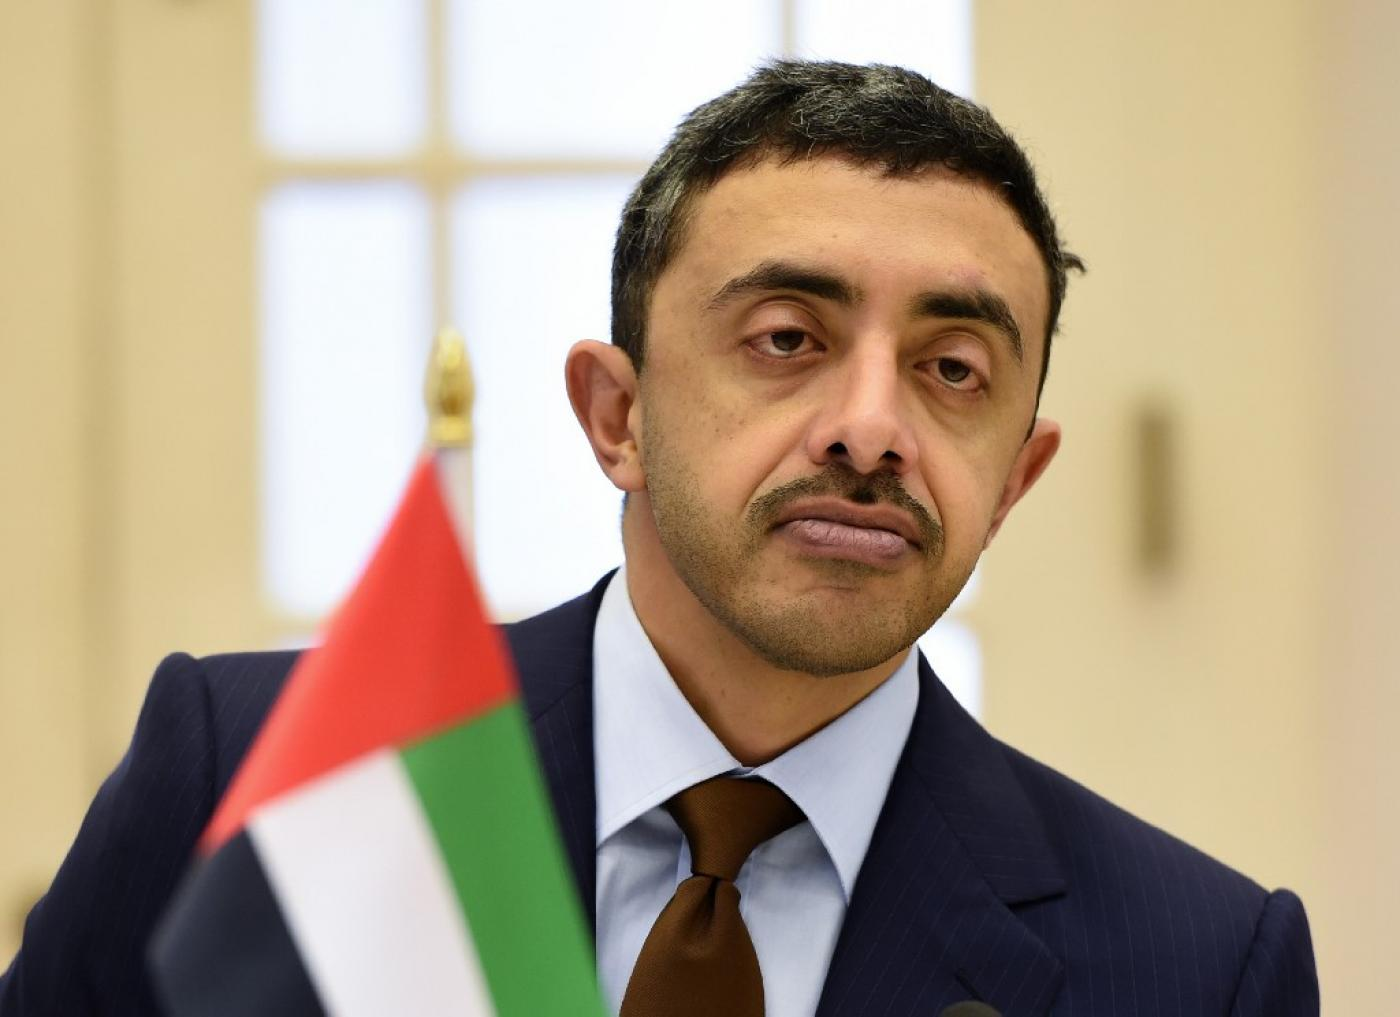 UAE: Not enough evidence to blame Gulf tanker attacks on